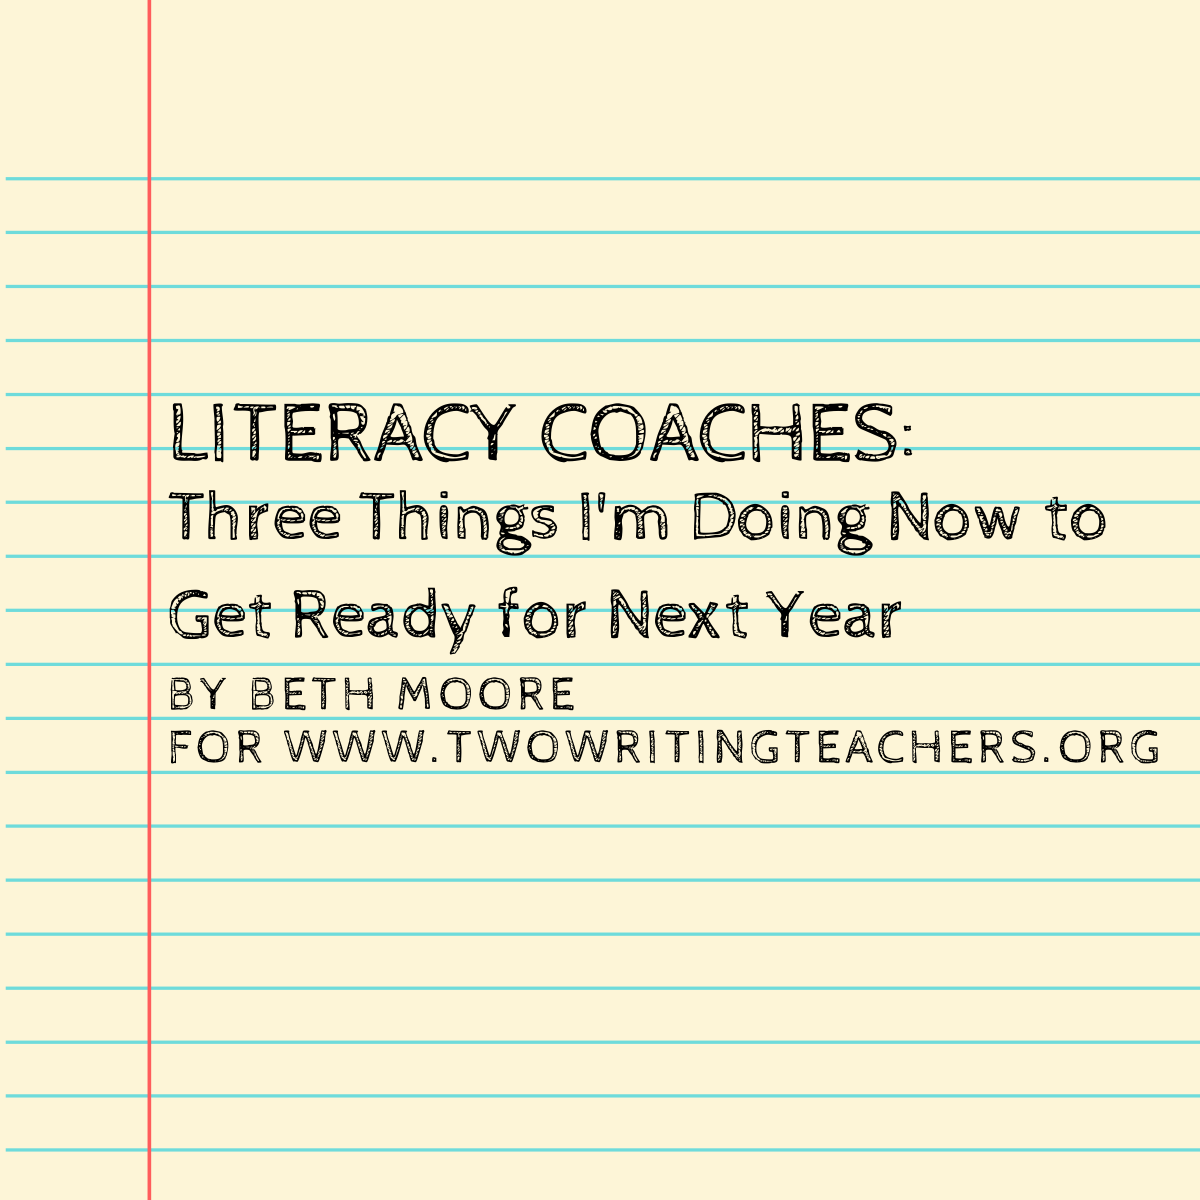 Literacy Coaches: Three Things I'm Doing in June to Get Ready for Next Year